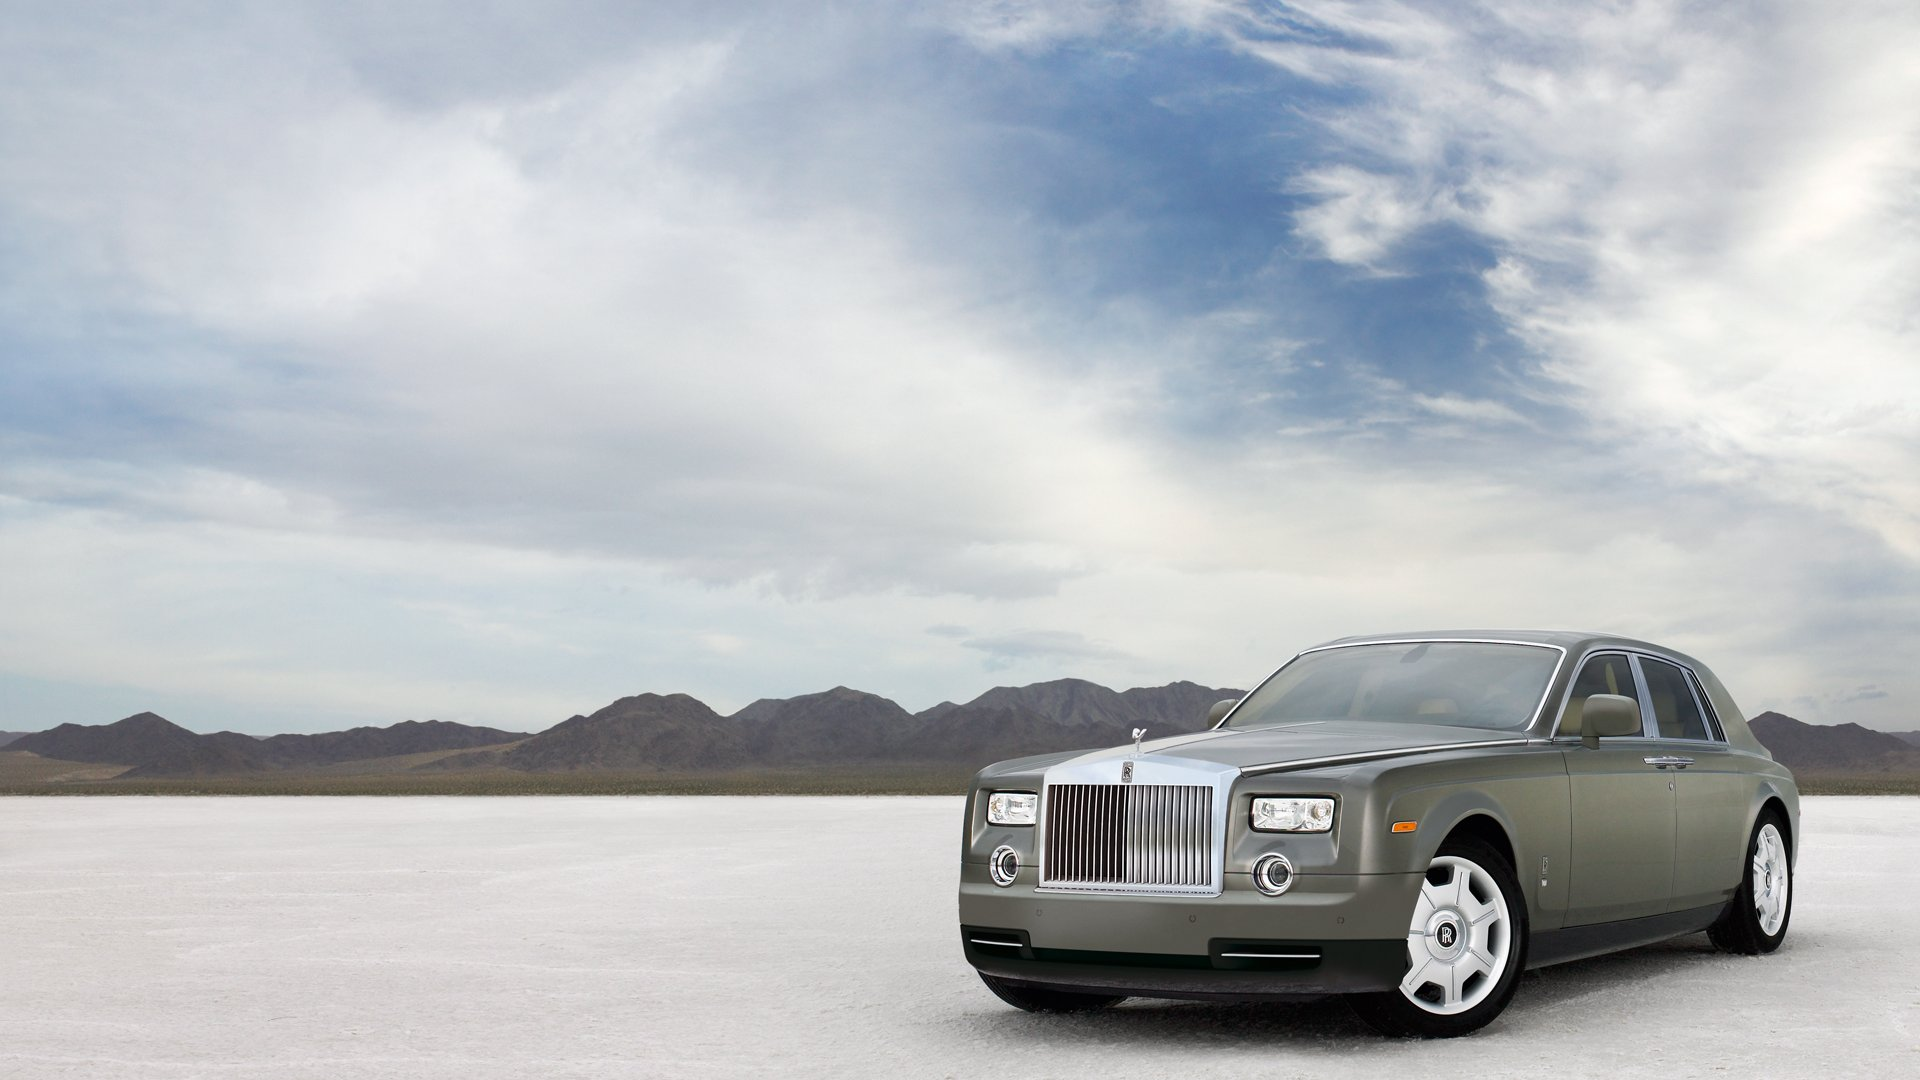 2012 rolls-royce phantom news and information